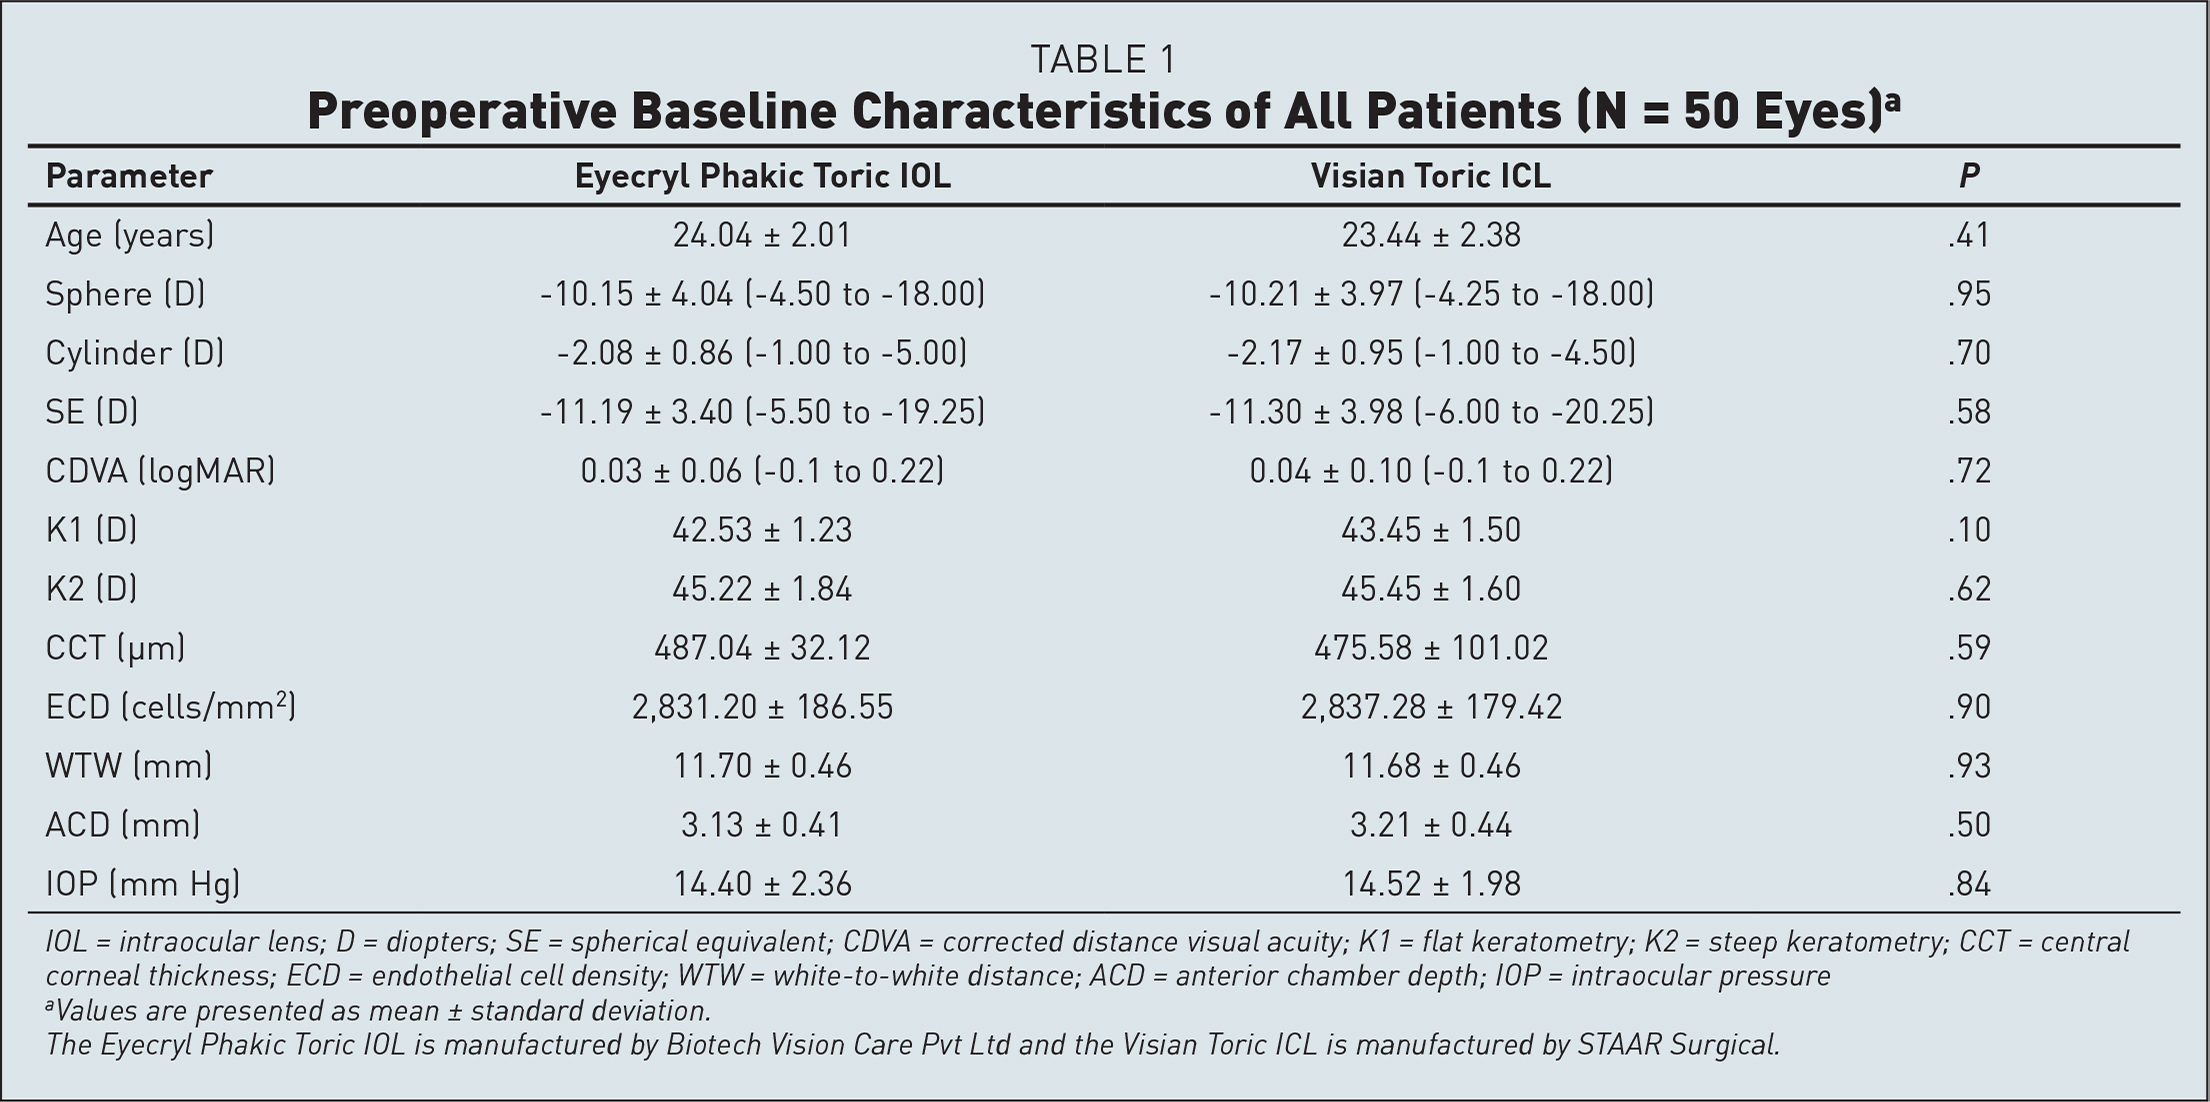 Preoperative Baseline Characteristics of All Patients (N = 50 Eyes)a